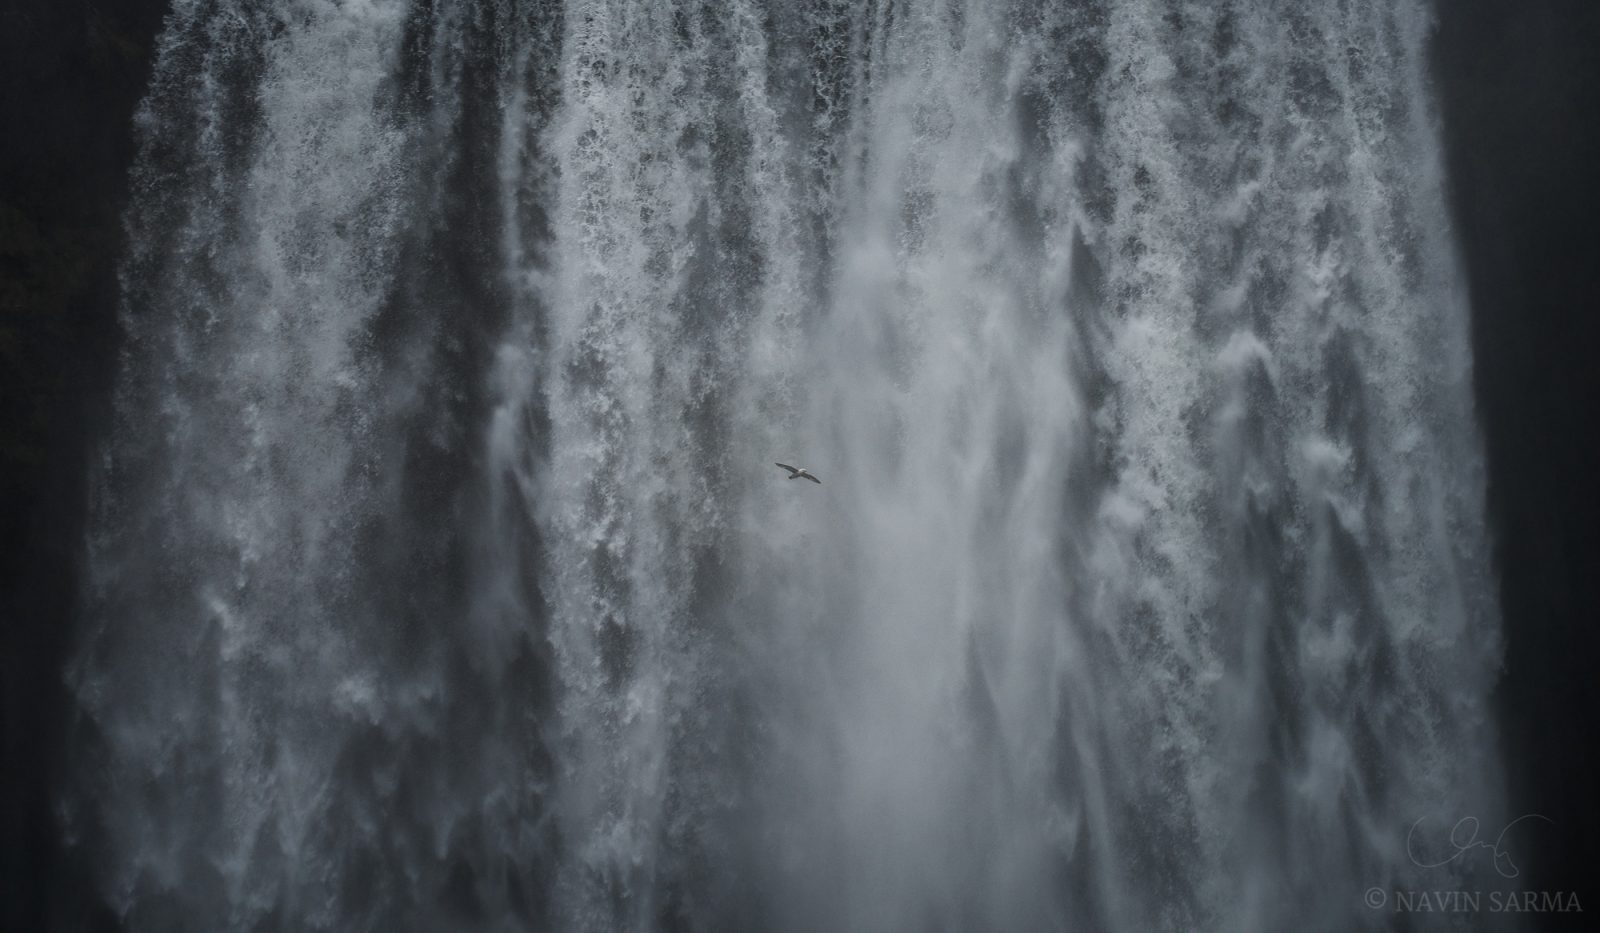 In search of food, a seagull soars across the massive Skógafoss waterfall